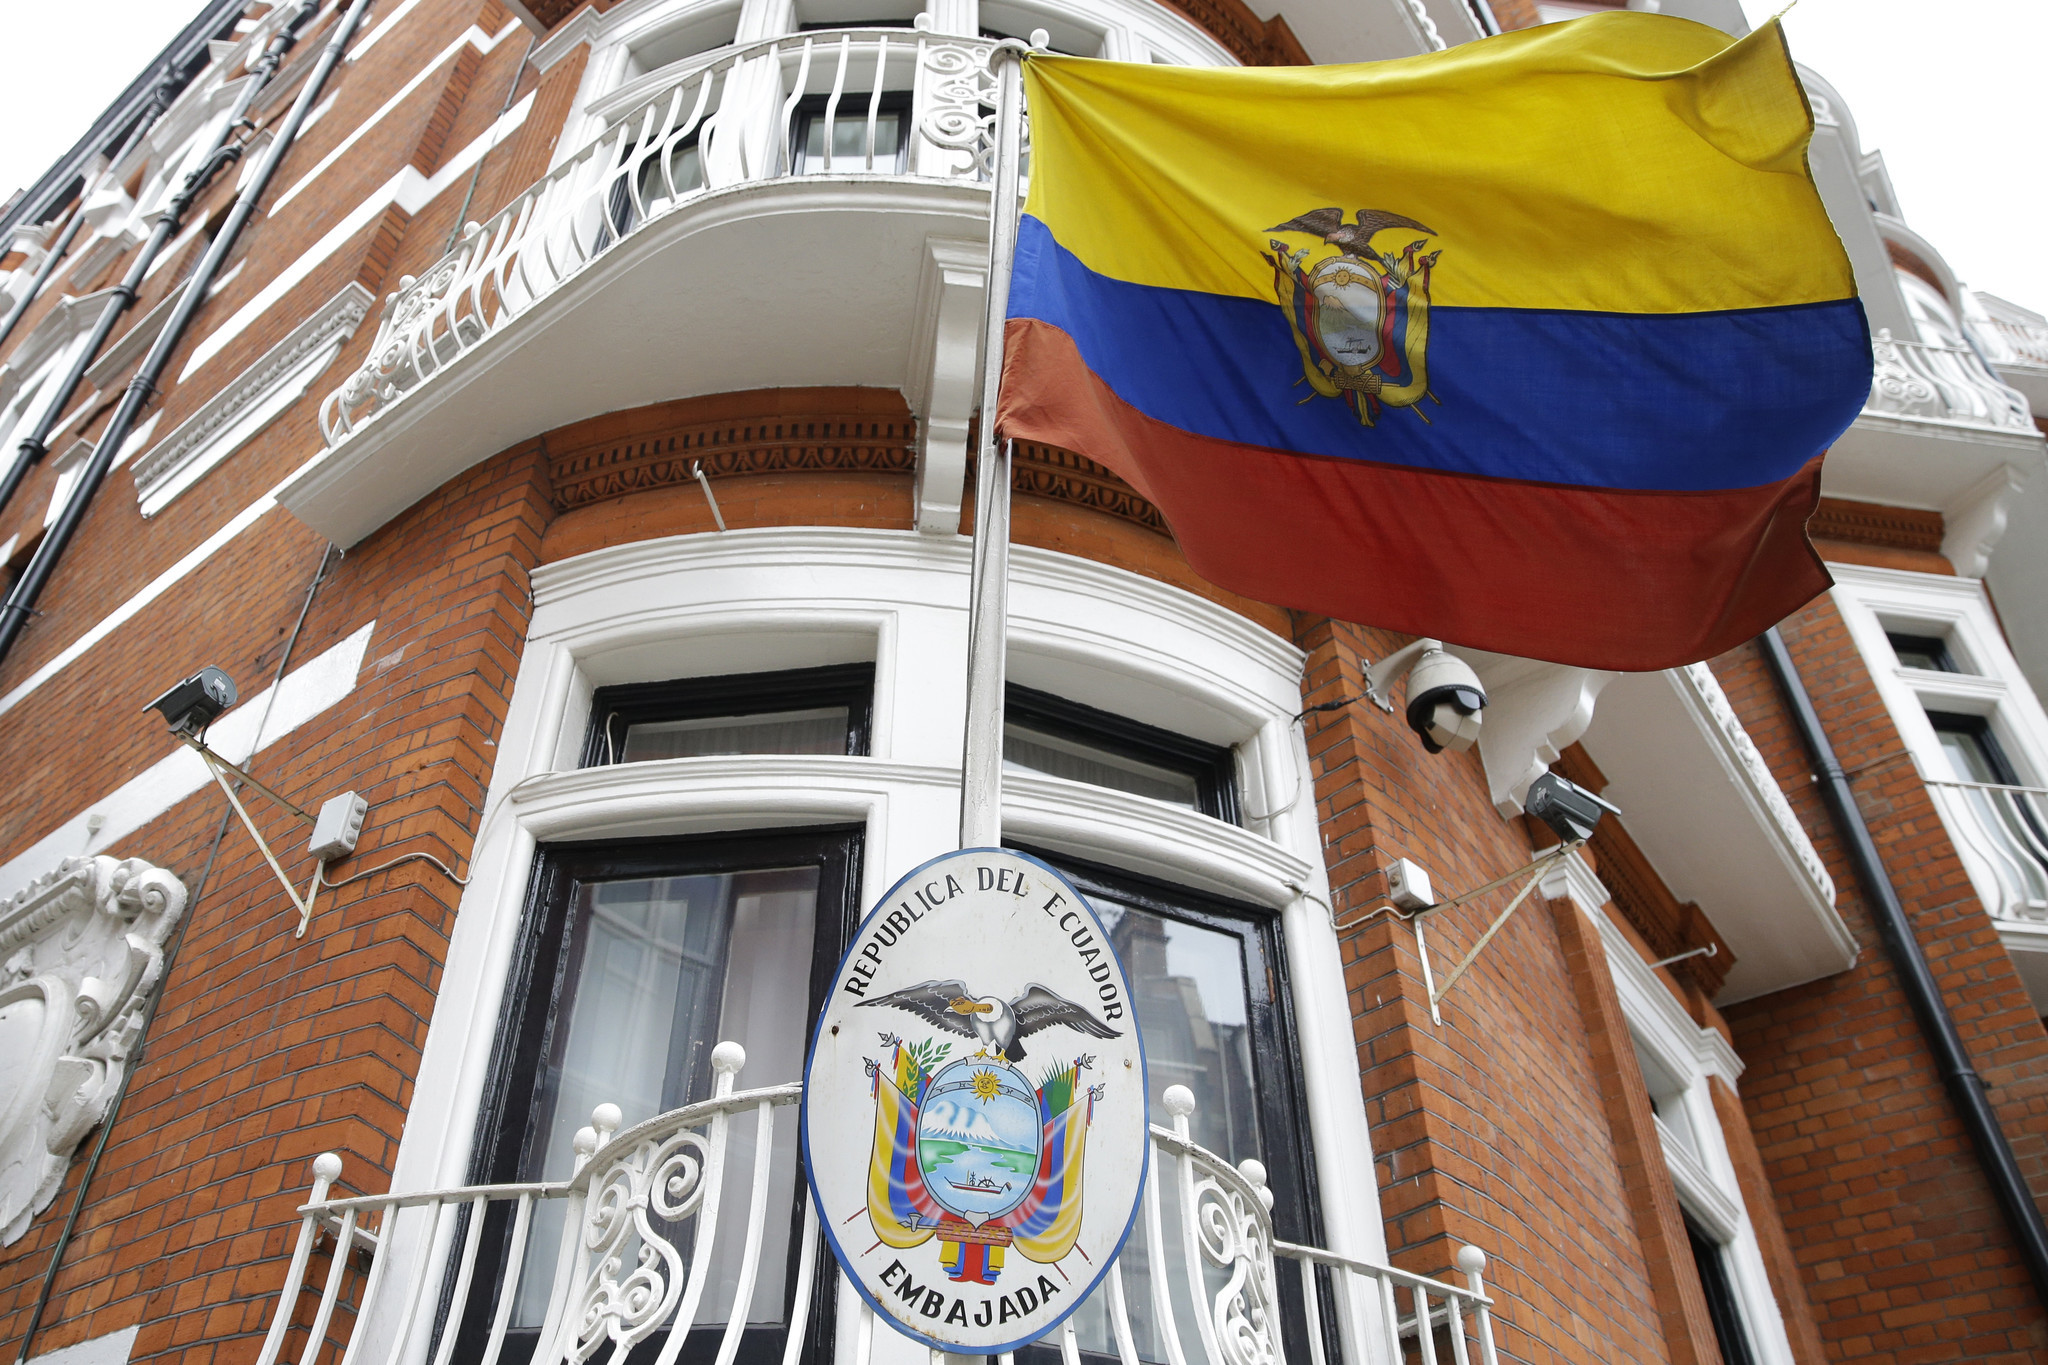 wikileaks office. Ecuador Says It \u0027temporarily Restricted\u0027 Internet Access Of WikiLeaks Founder Julian Assange - Chicago Tribune Wikileaks Office